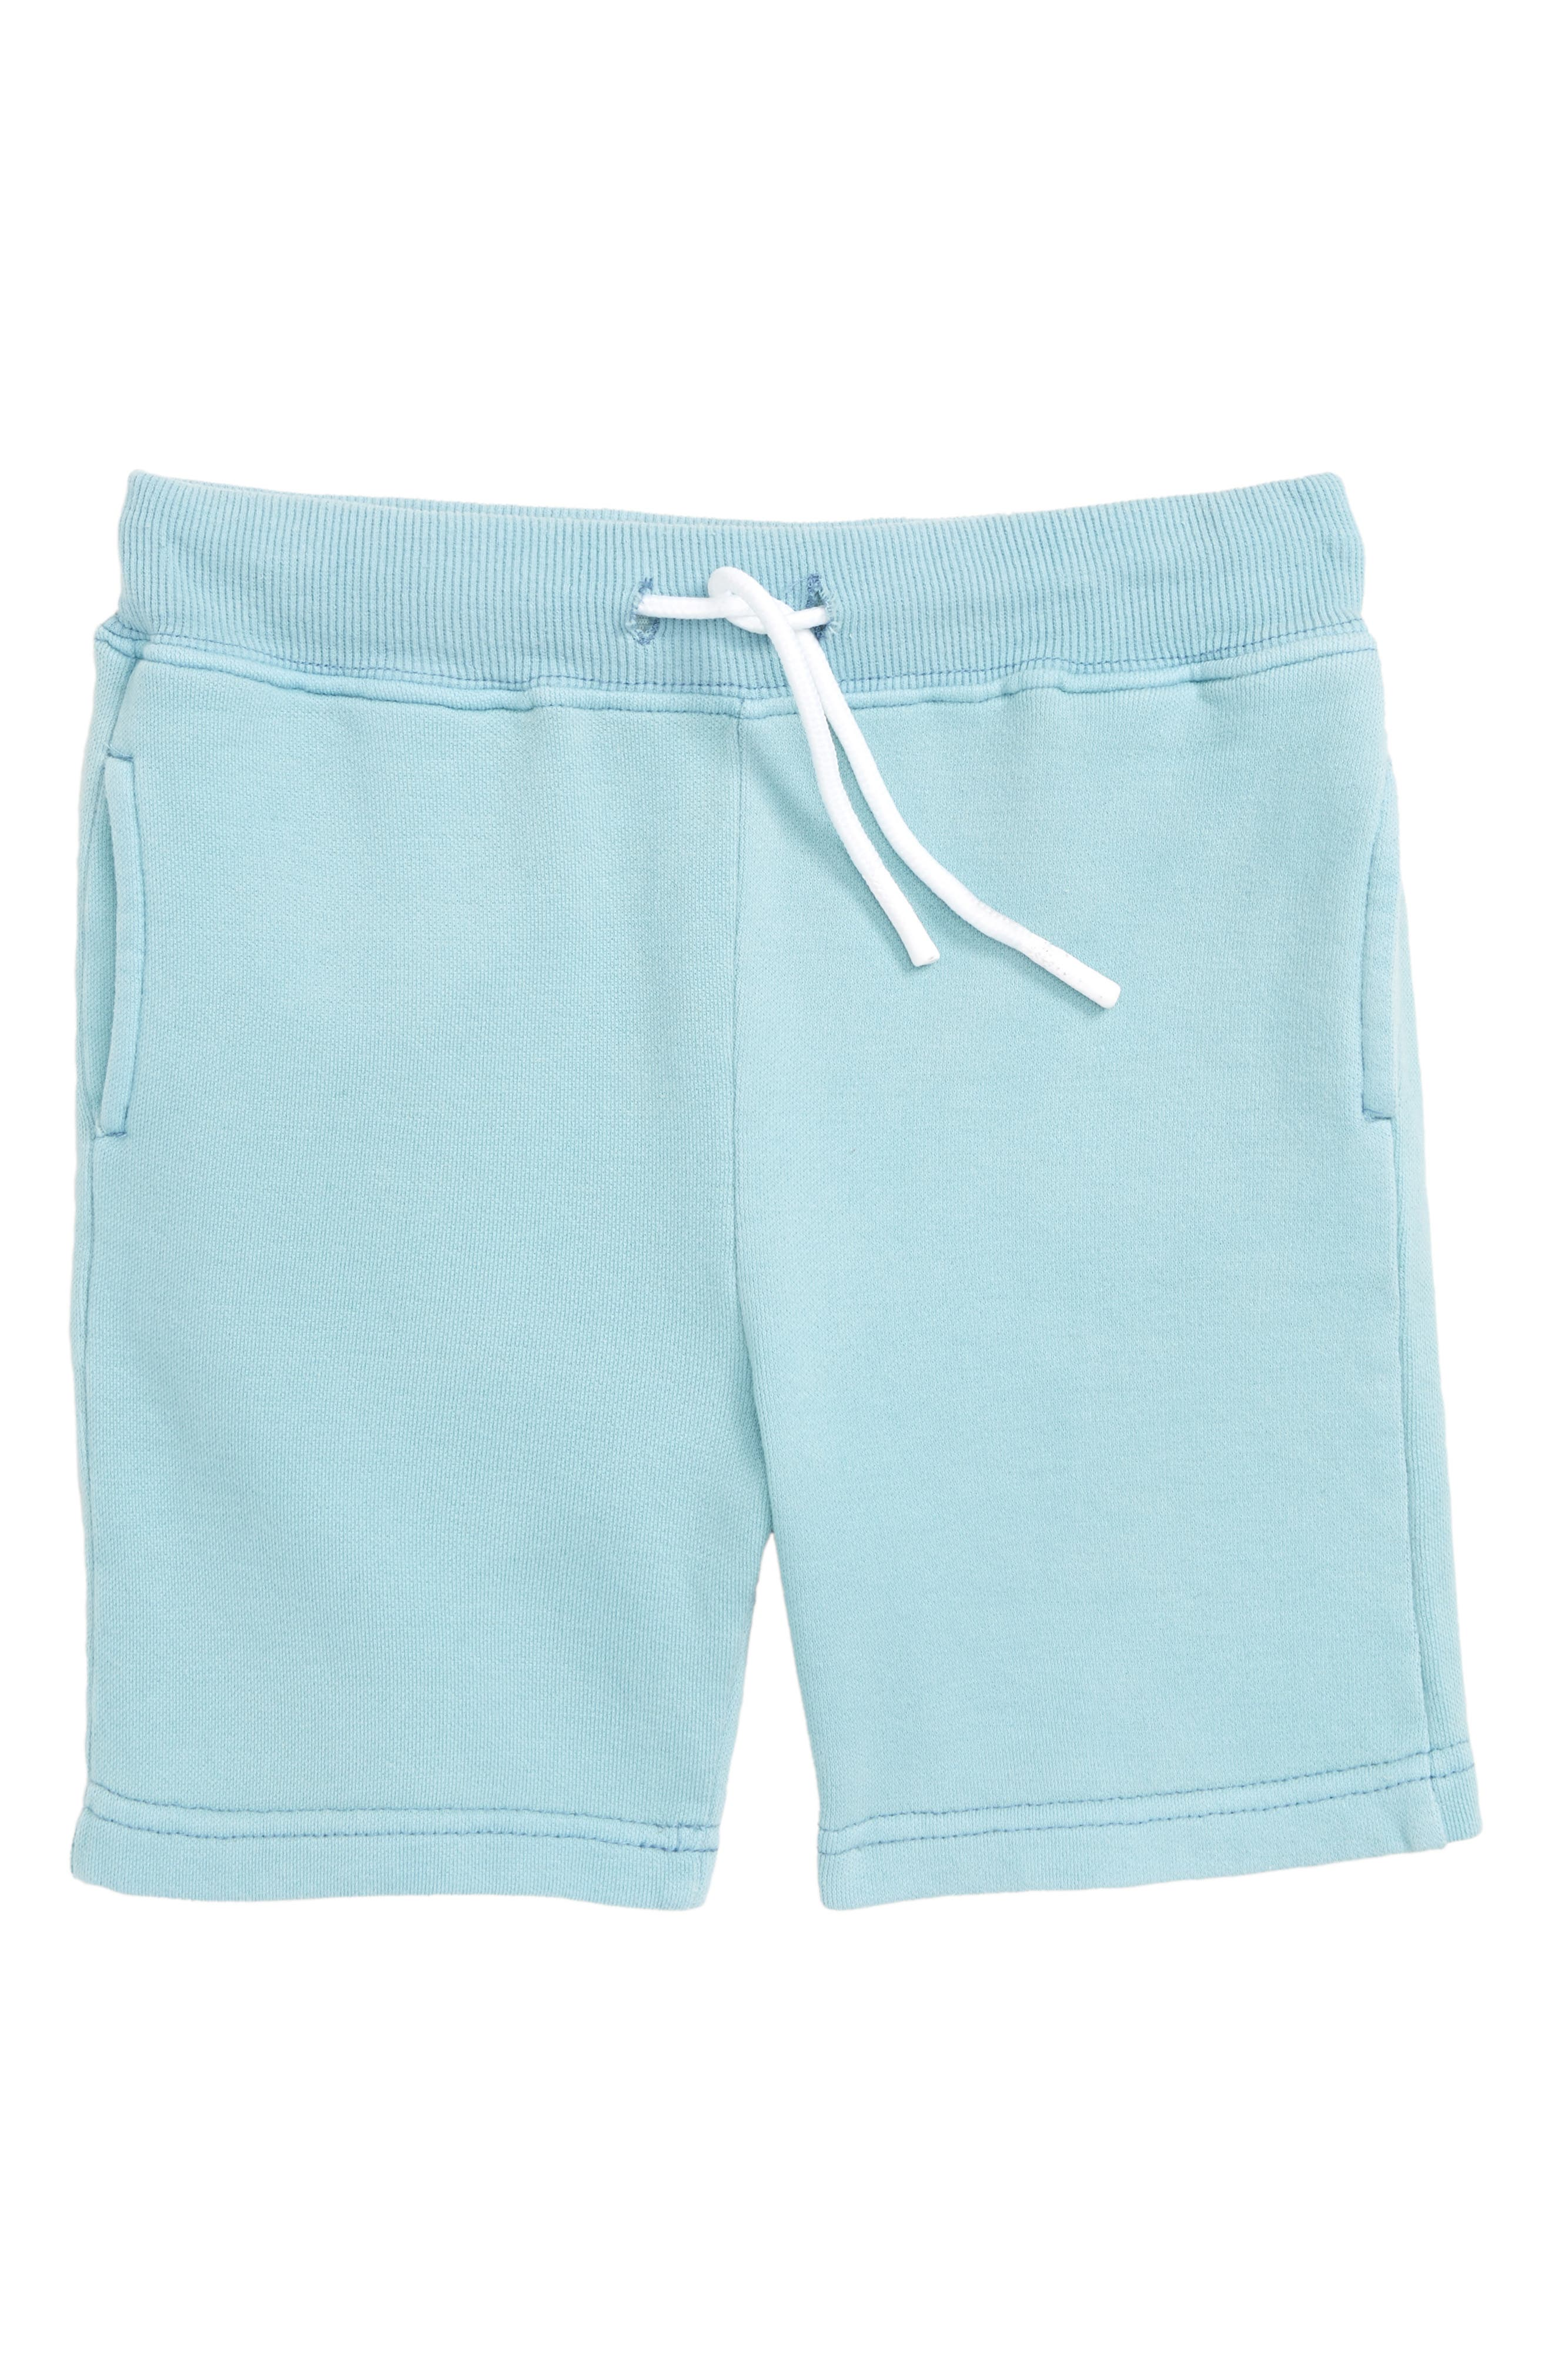 Record Shorts,                         Main,                         color, 330